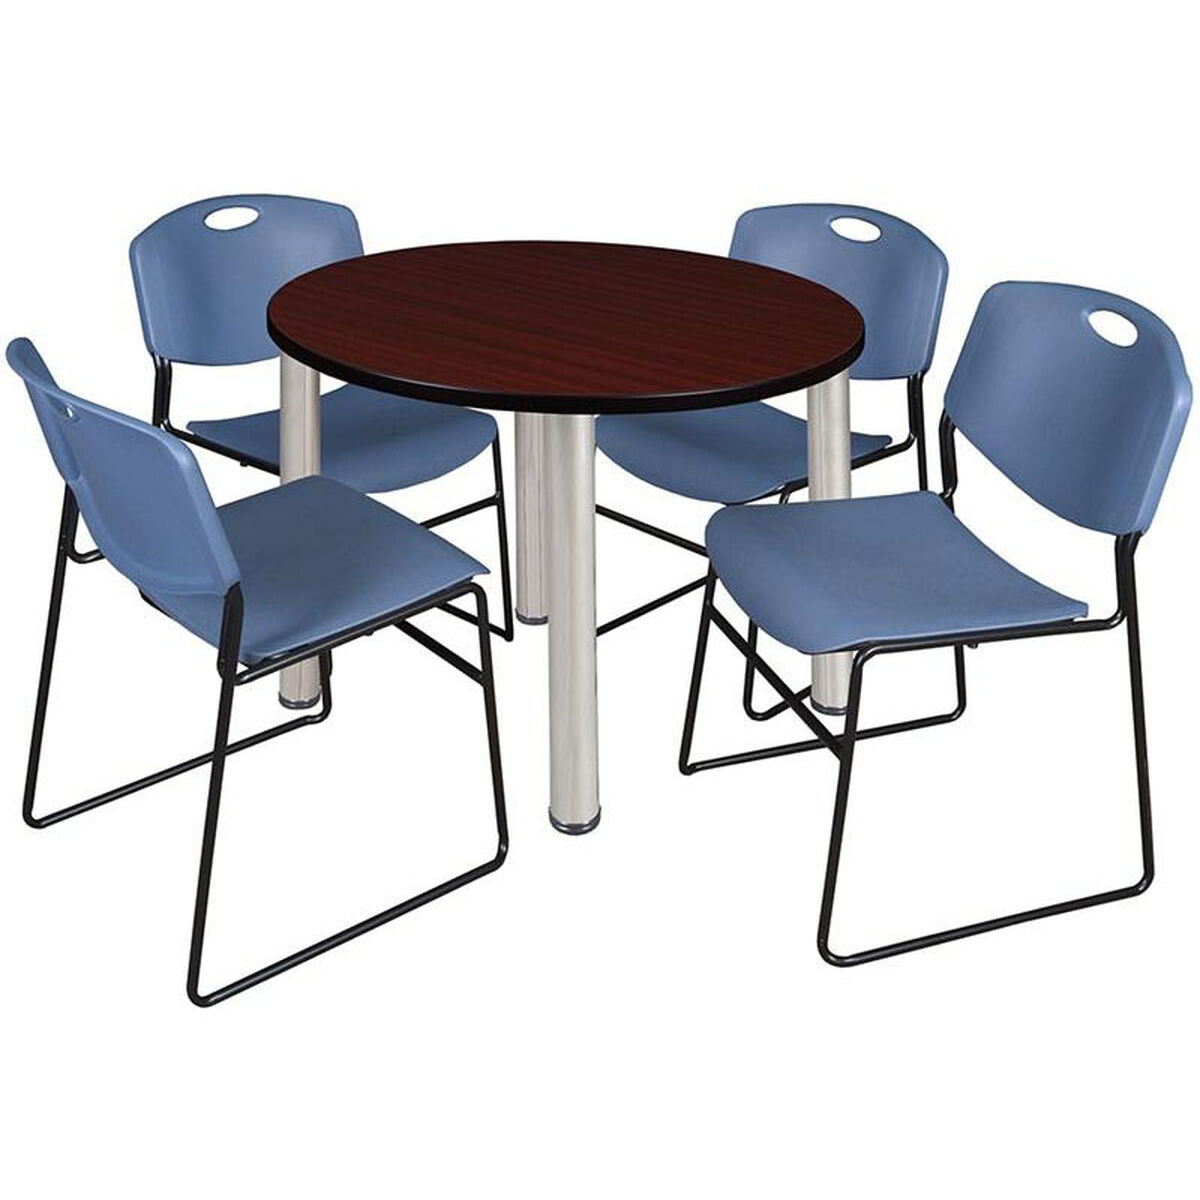 Round Table And Stack Chair Set TBRNDMHBPCMBE StackChairsLesscom - Round conference table for 4